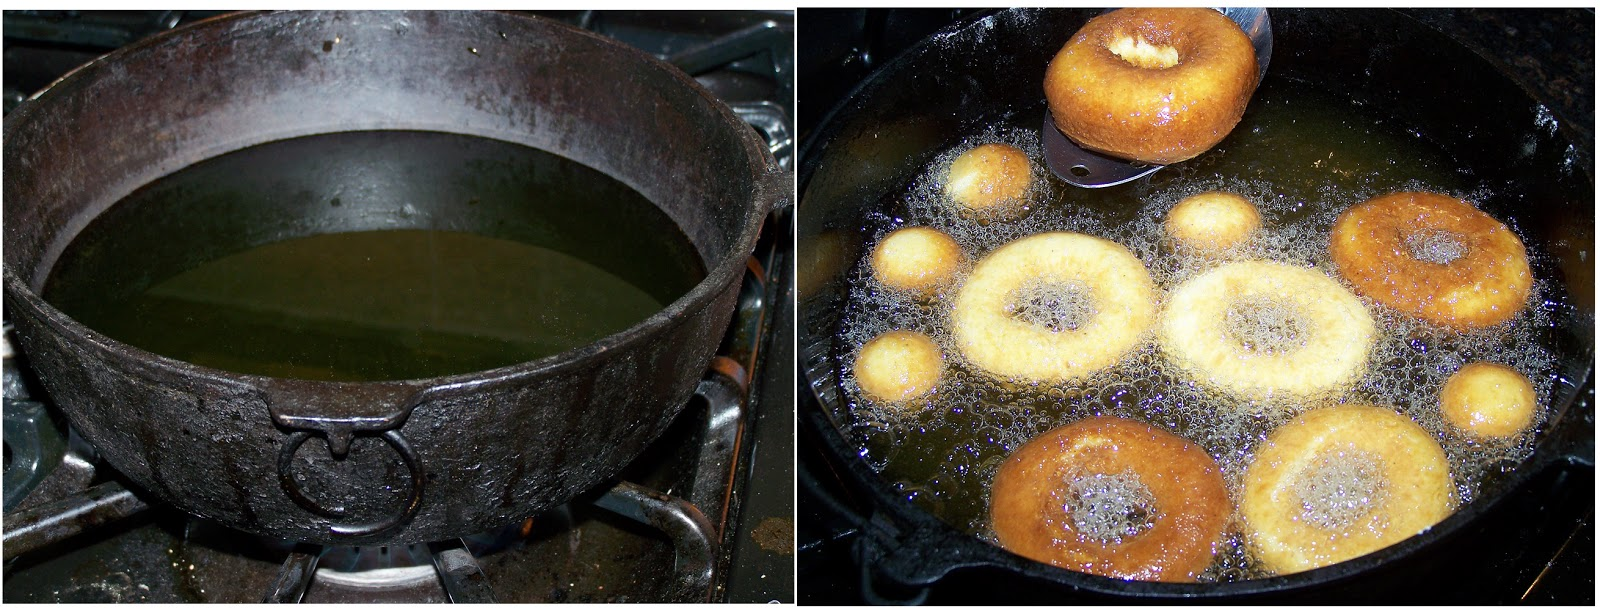 Homemade Fried Donuts